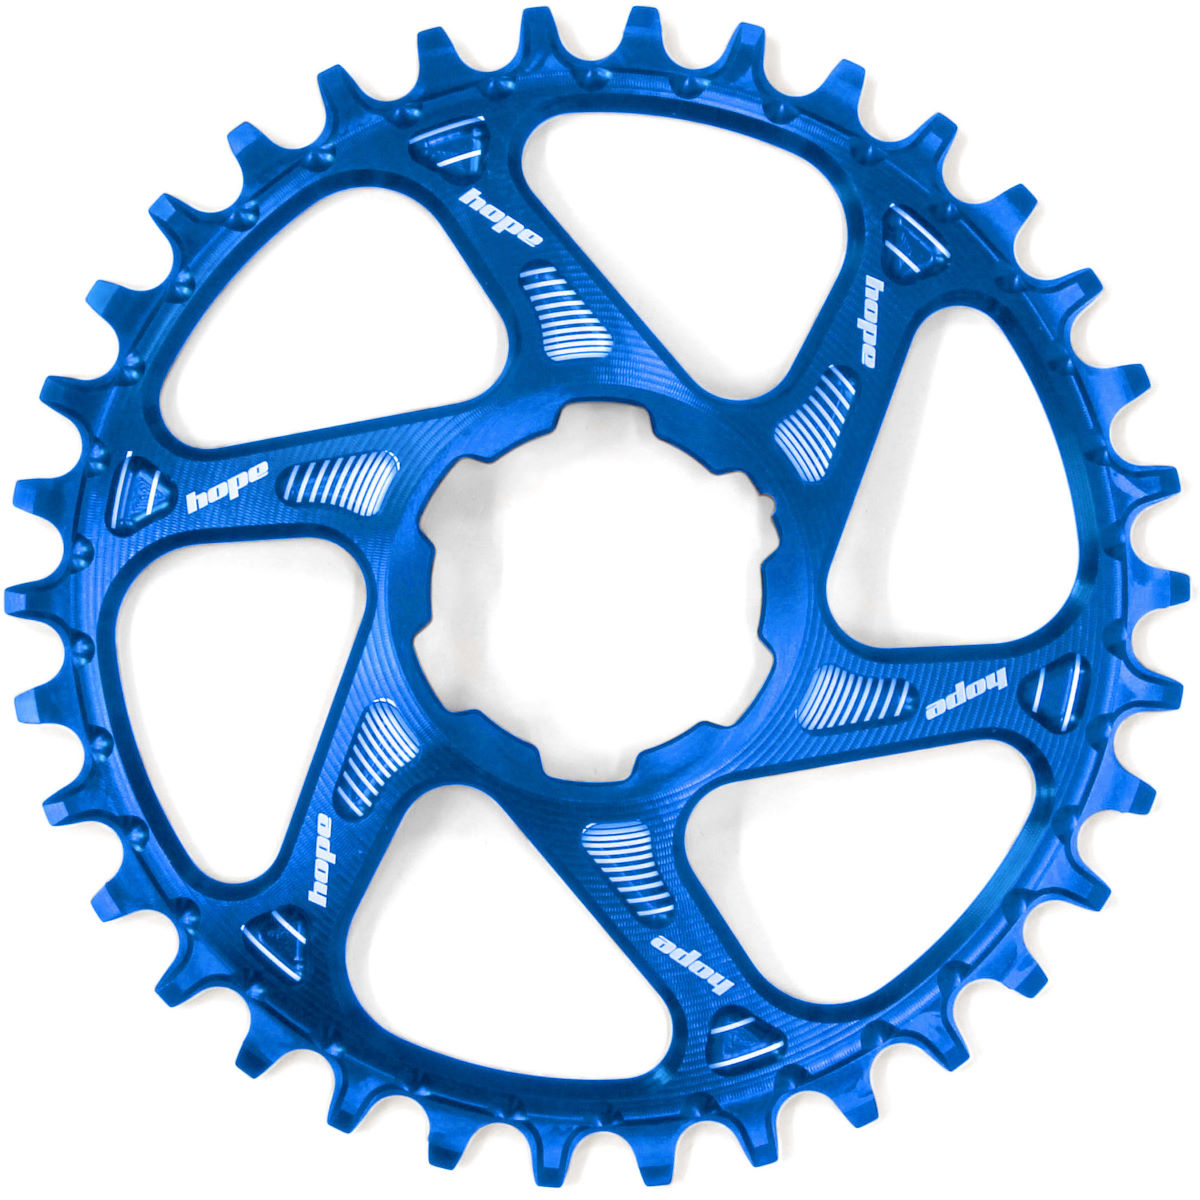 Hope Hope Spiderless Boost Retainer Ring   Chain Rings